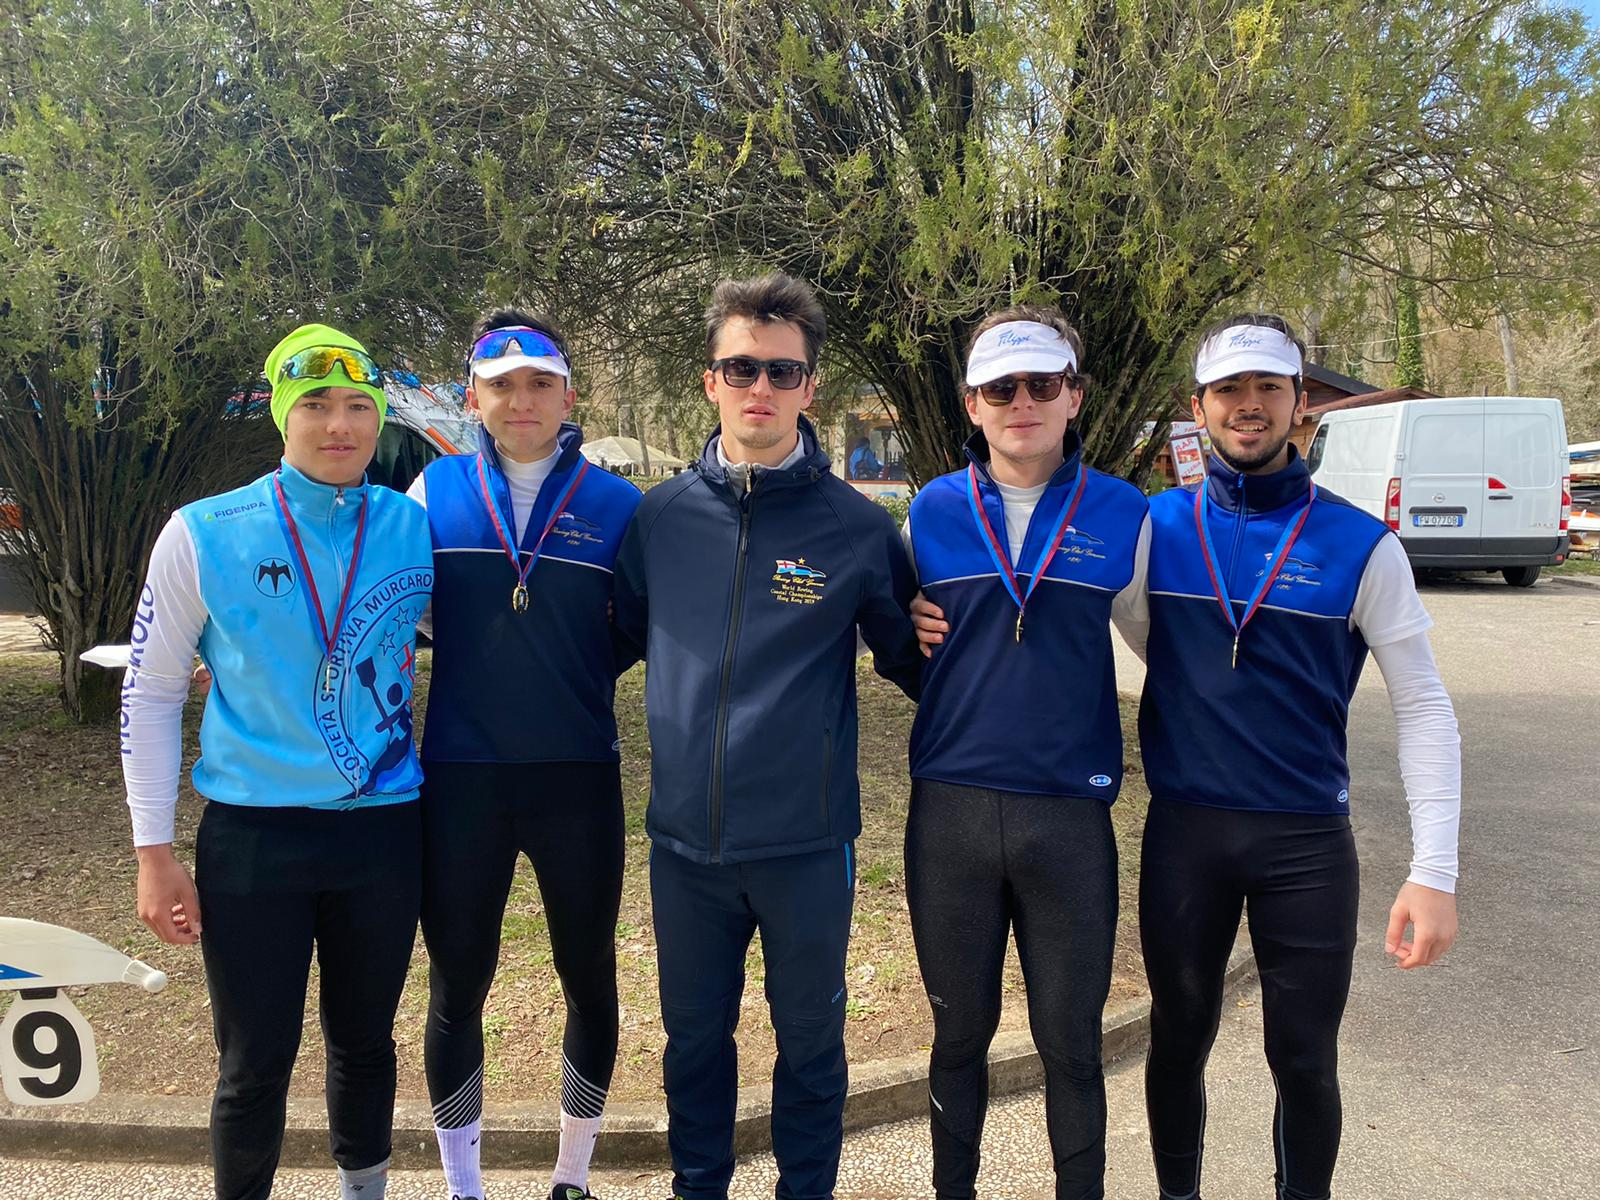 ROWING D'ORO AL PRIMO MEETING NAZIONALE